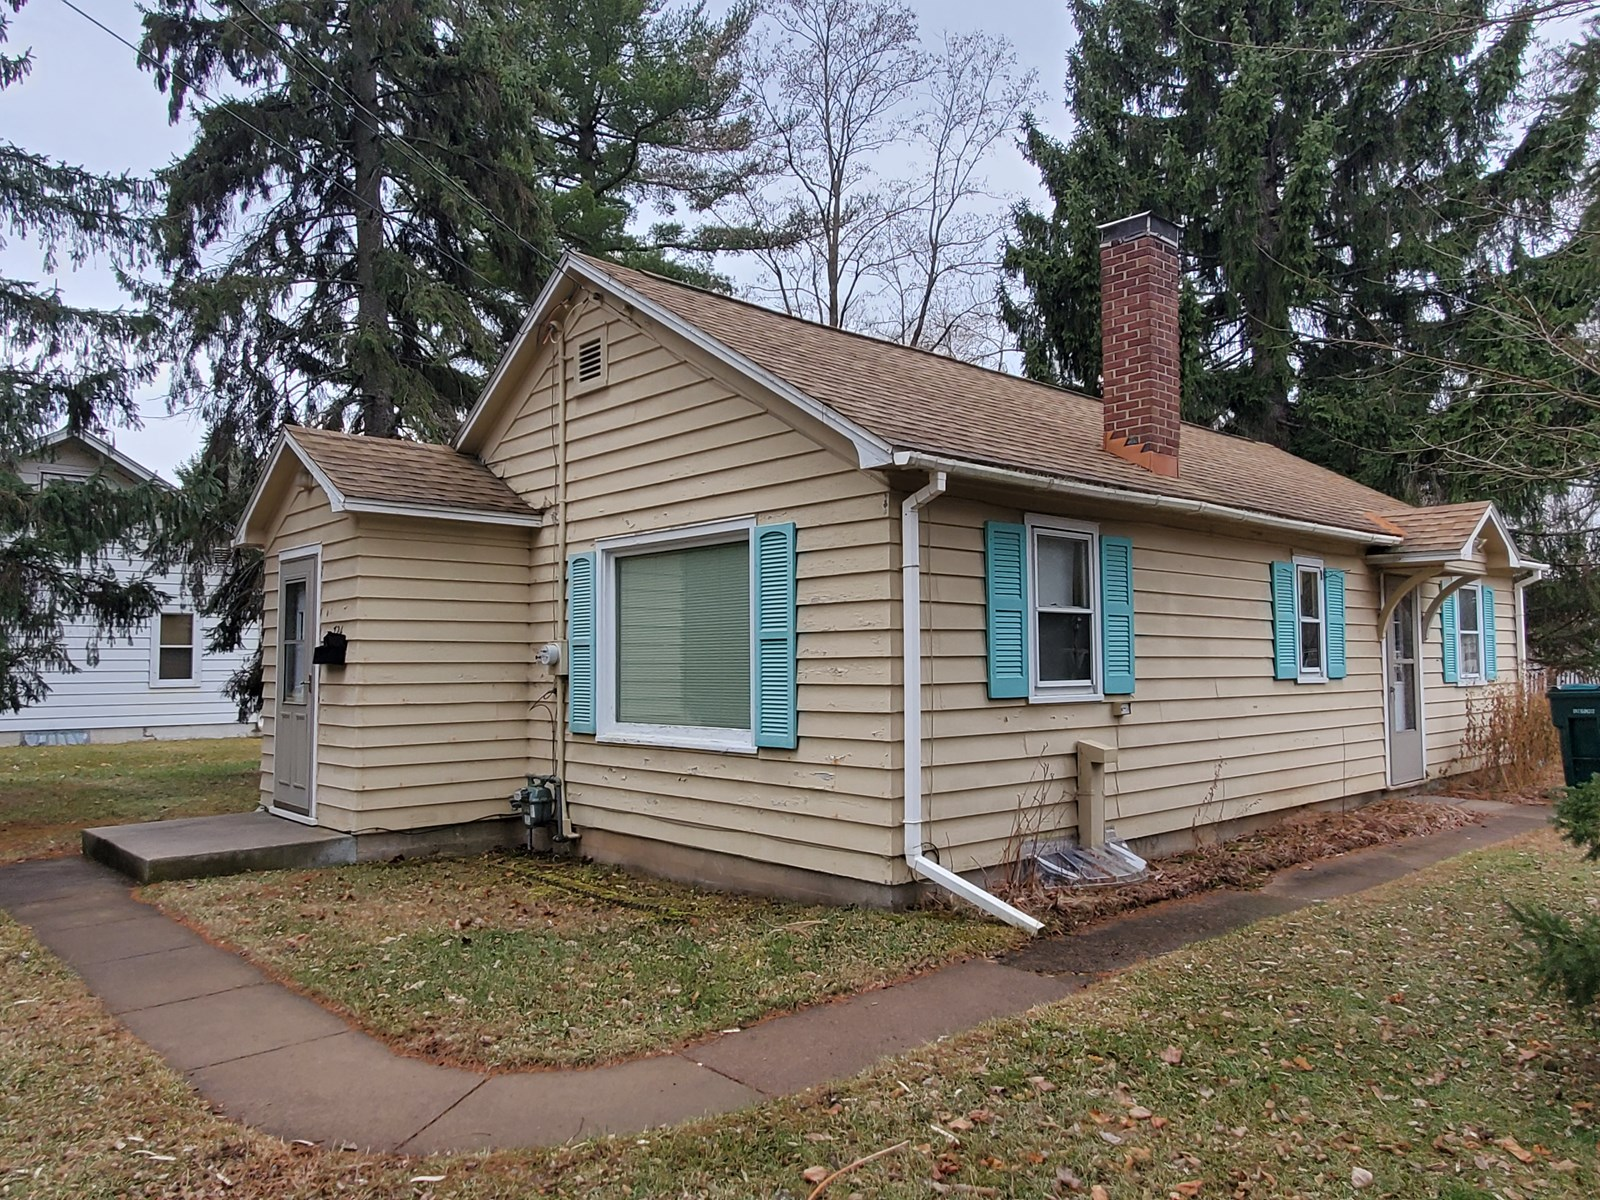 City of Waupaca Home For Sale